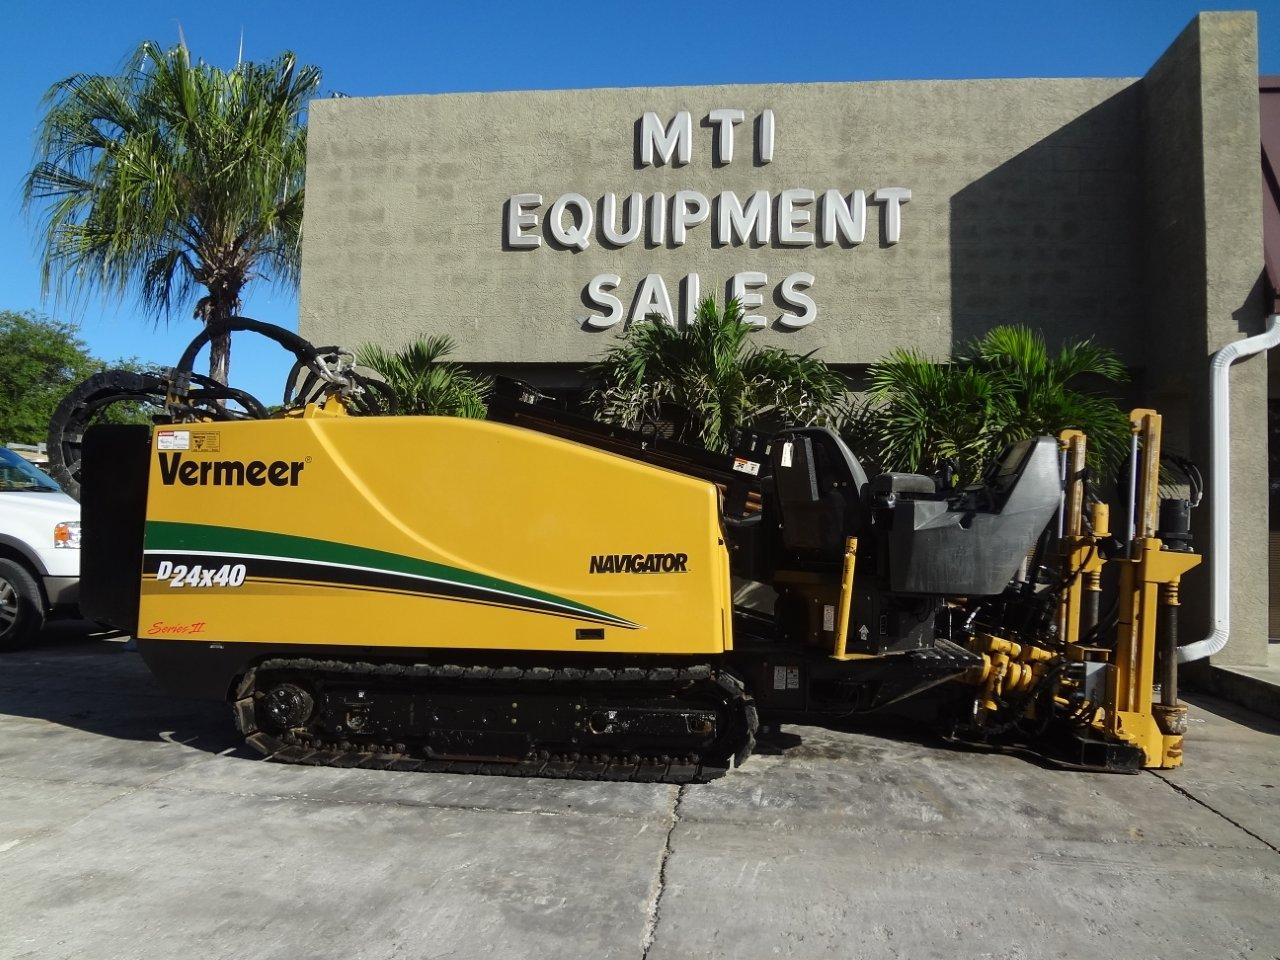 This 2010 Vermeer directional drill is available from Garner Equipment.